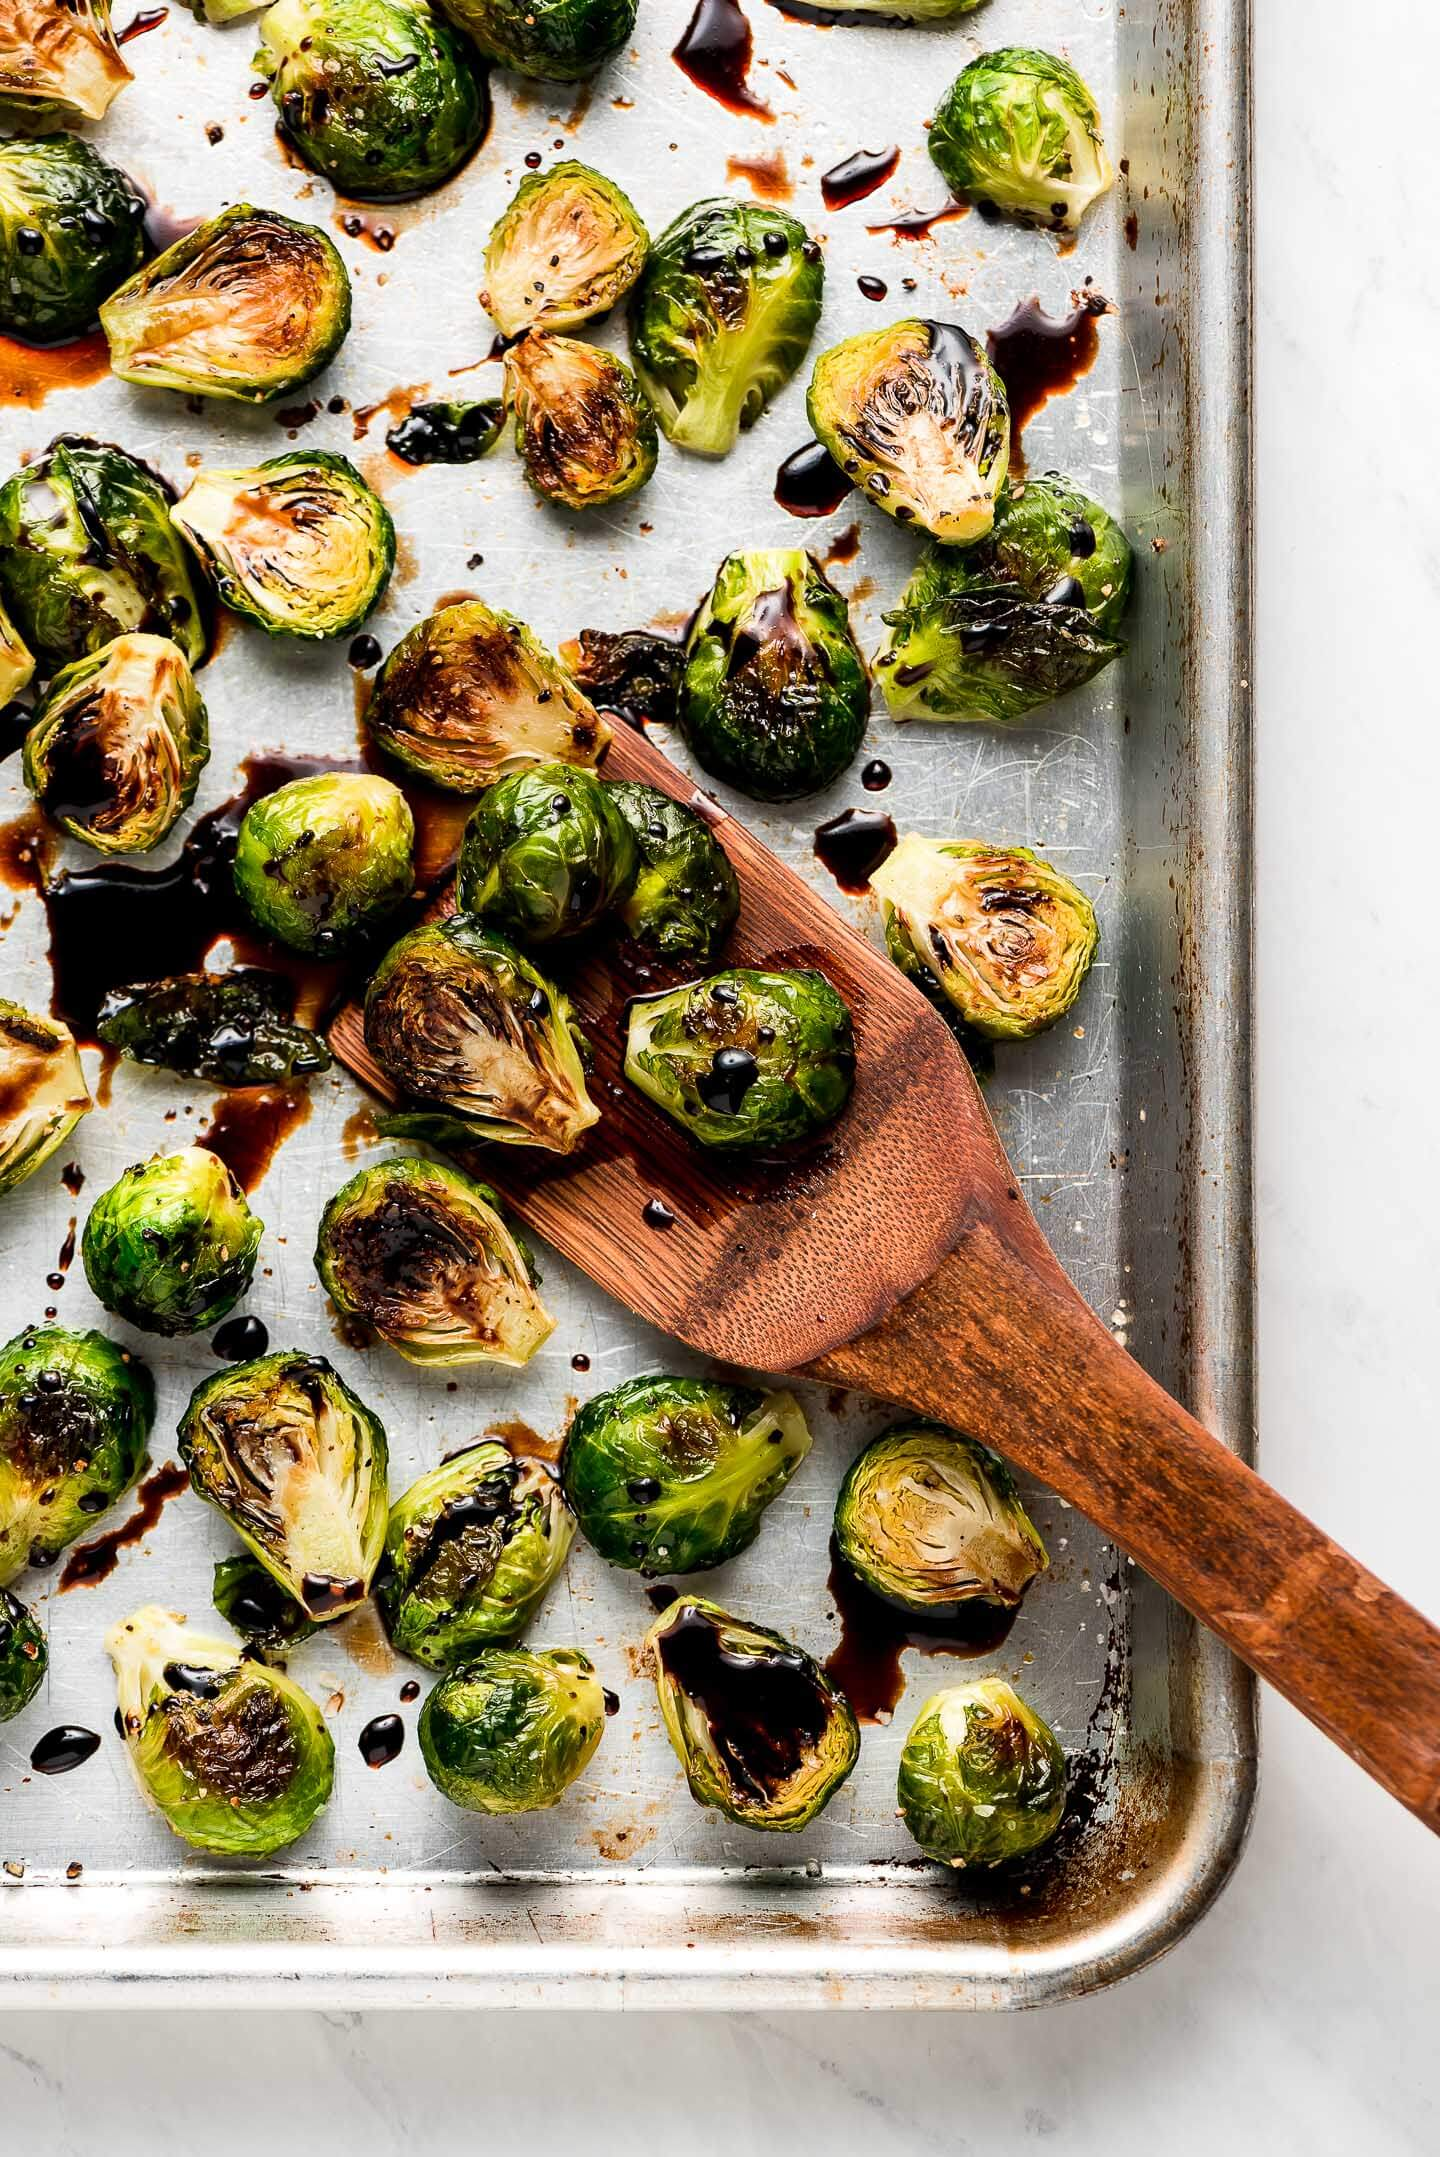 Roasted Brussel Sprouts on a baking sheet drizzled with balsamic reduction.